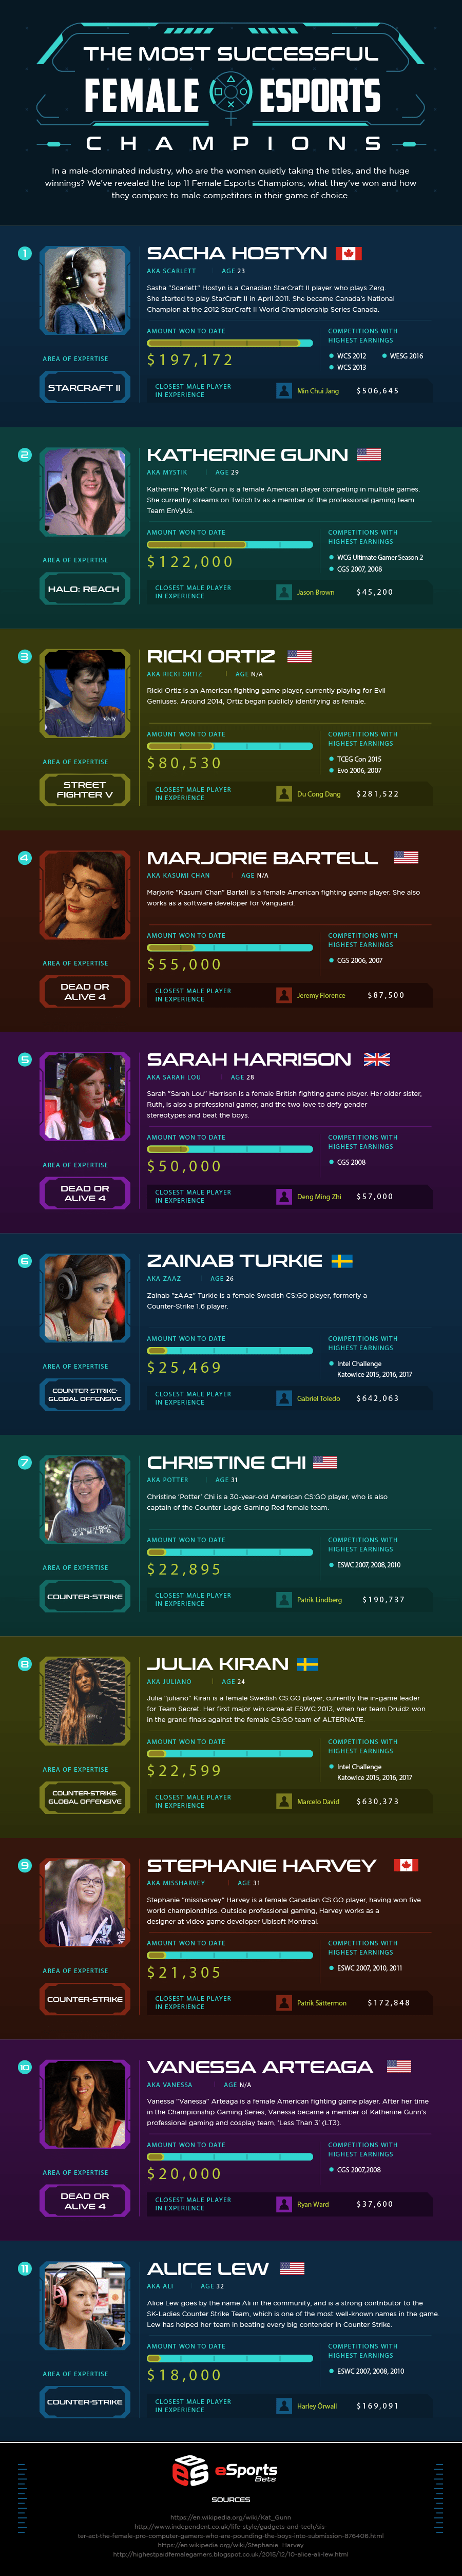 The 11 Female Esports Players Changing the Game for Women